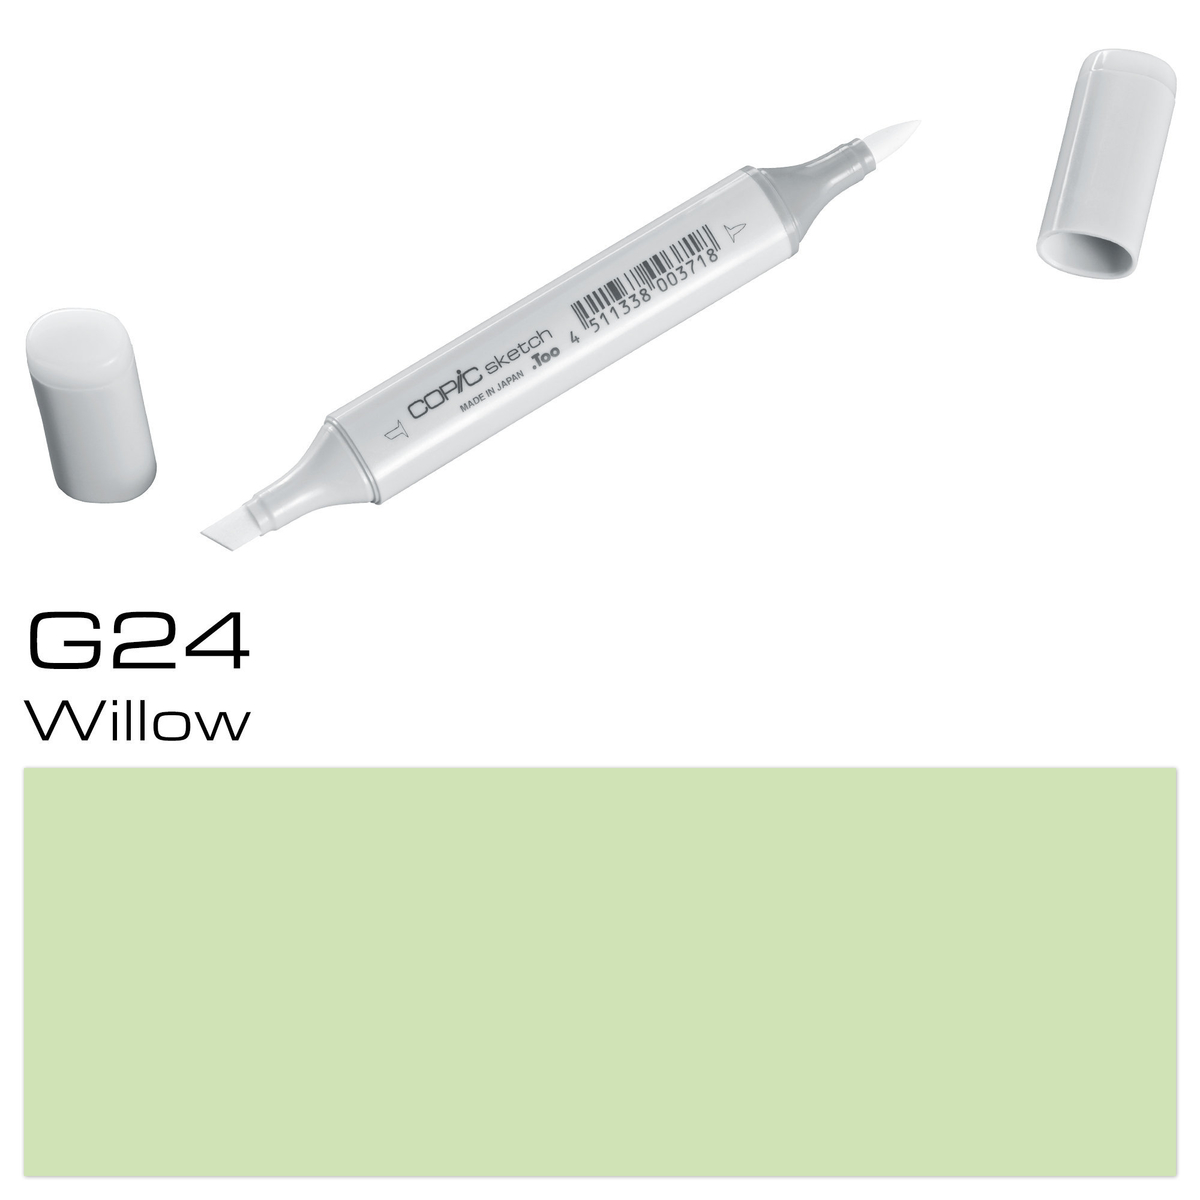 Copic Sketch G 24 willow